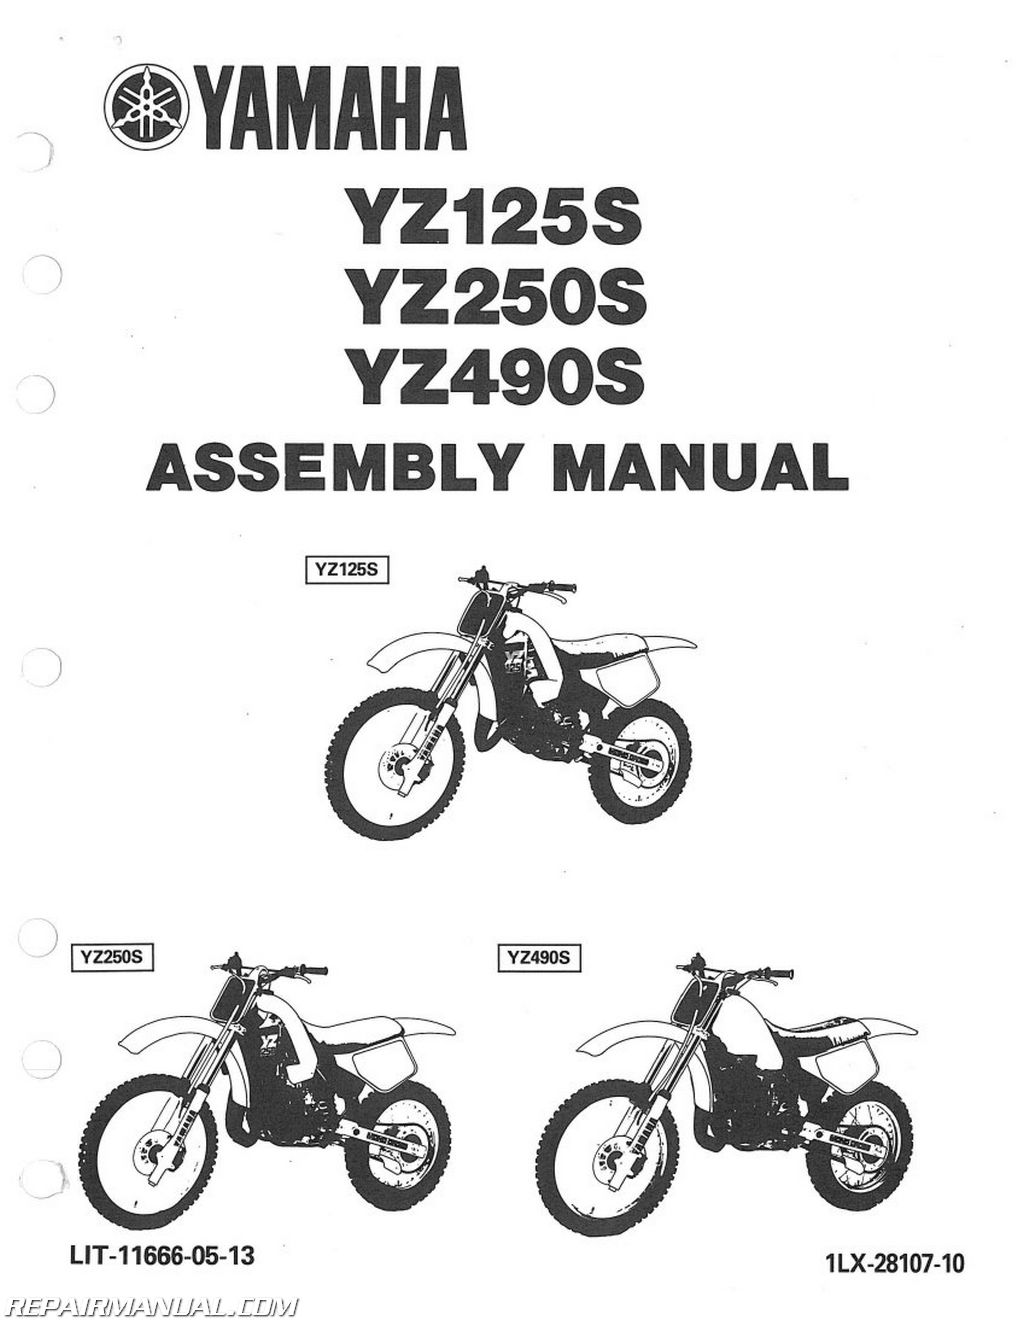 1986 Yamaha YZ125S YZ250S YZ490S Assembly Manual